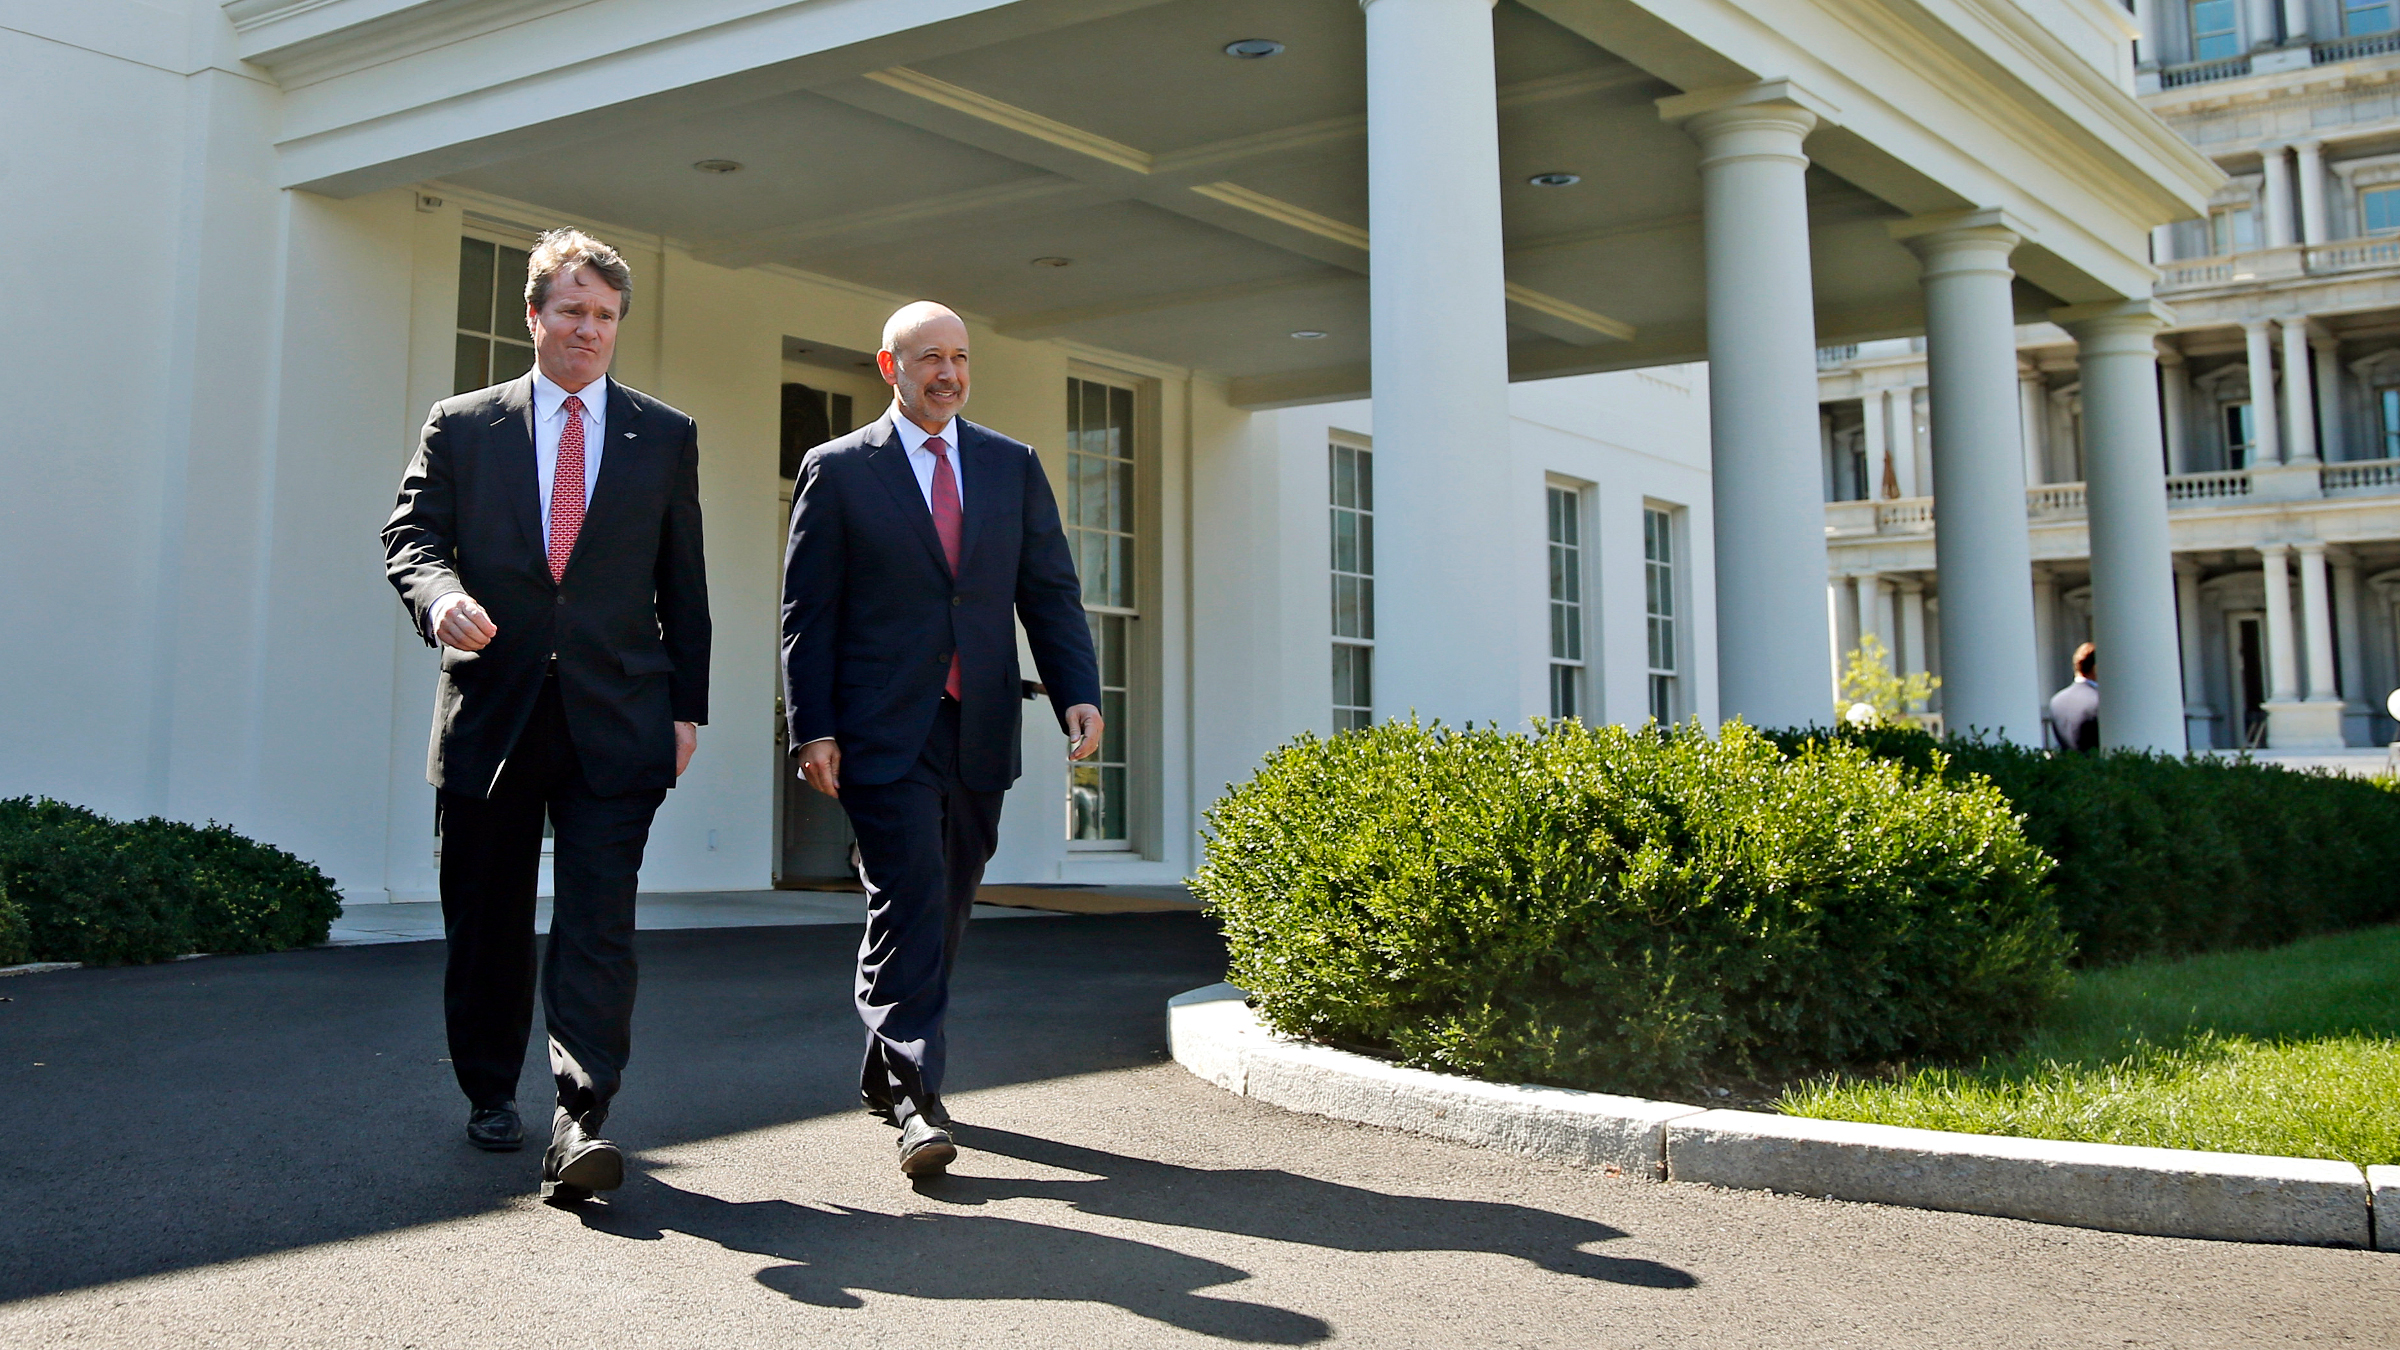 Goldman Sachs Group, Inc. Chairman and CEO Lloyd Blankfein, right, and Bank of America CEO Brian Moynihan, walk out of the West Wing of the White House in Washington, Wednesday, Oct. 2, 2013, to speak to reporters after they and other financial leaders met with President Barack Obama regarding the debt ceiling and the economy.